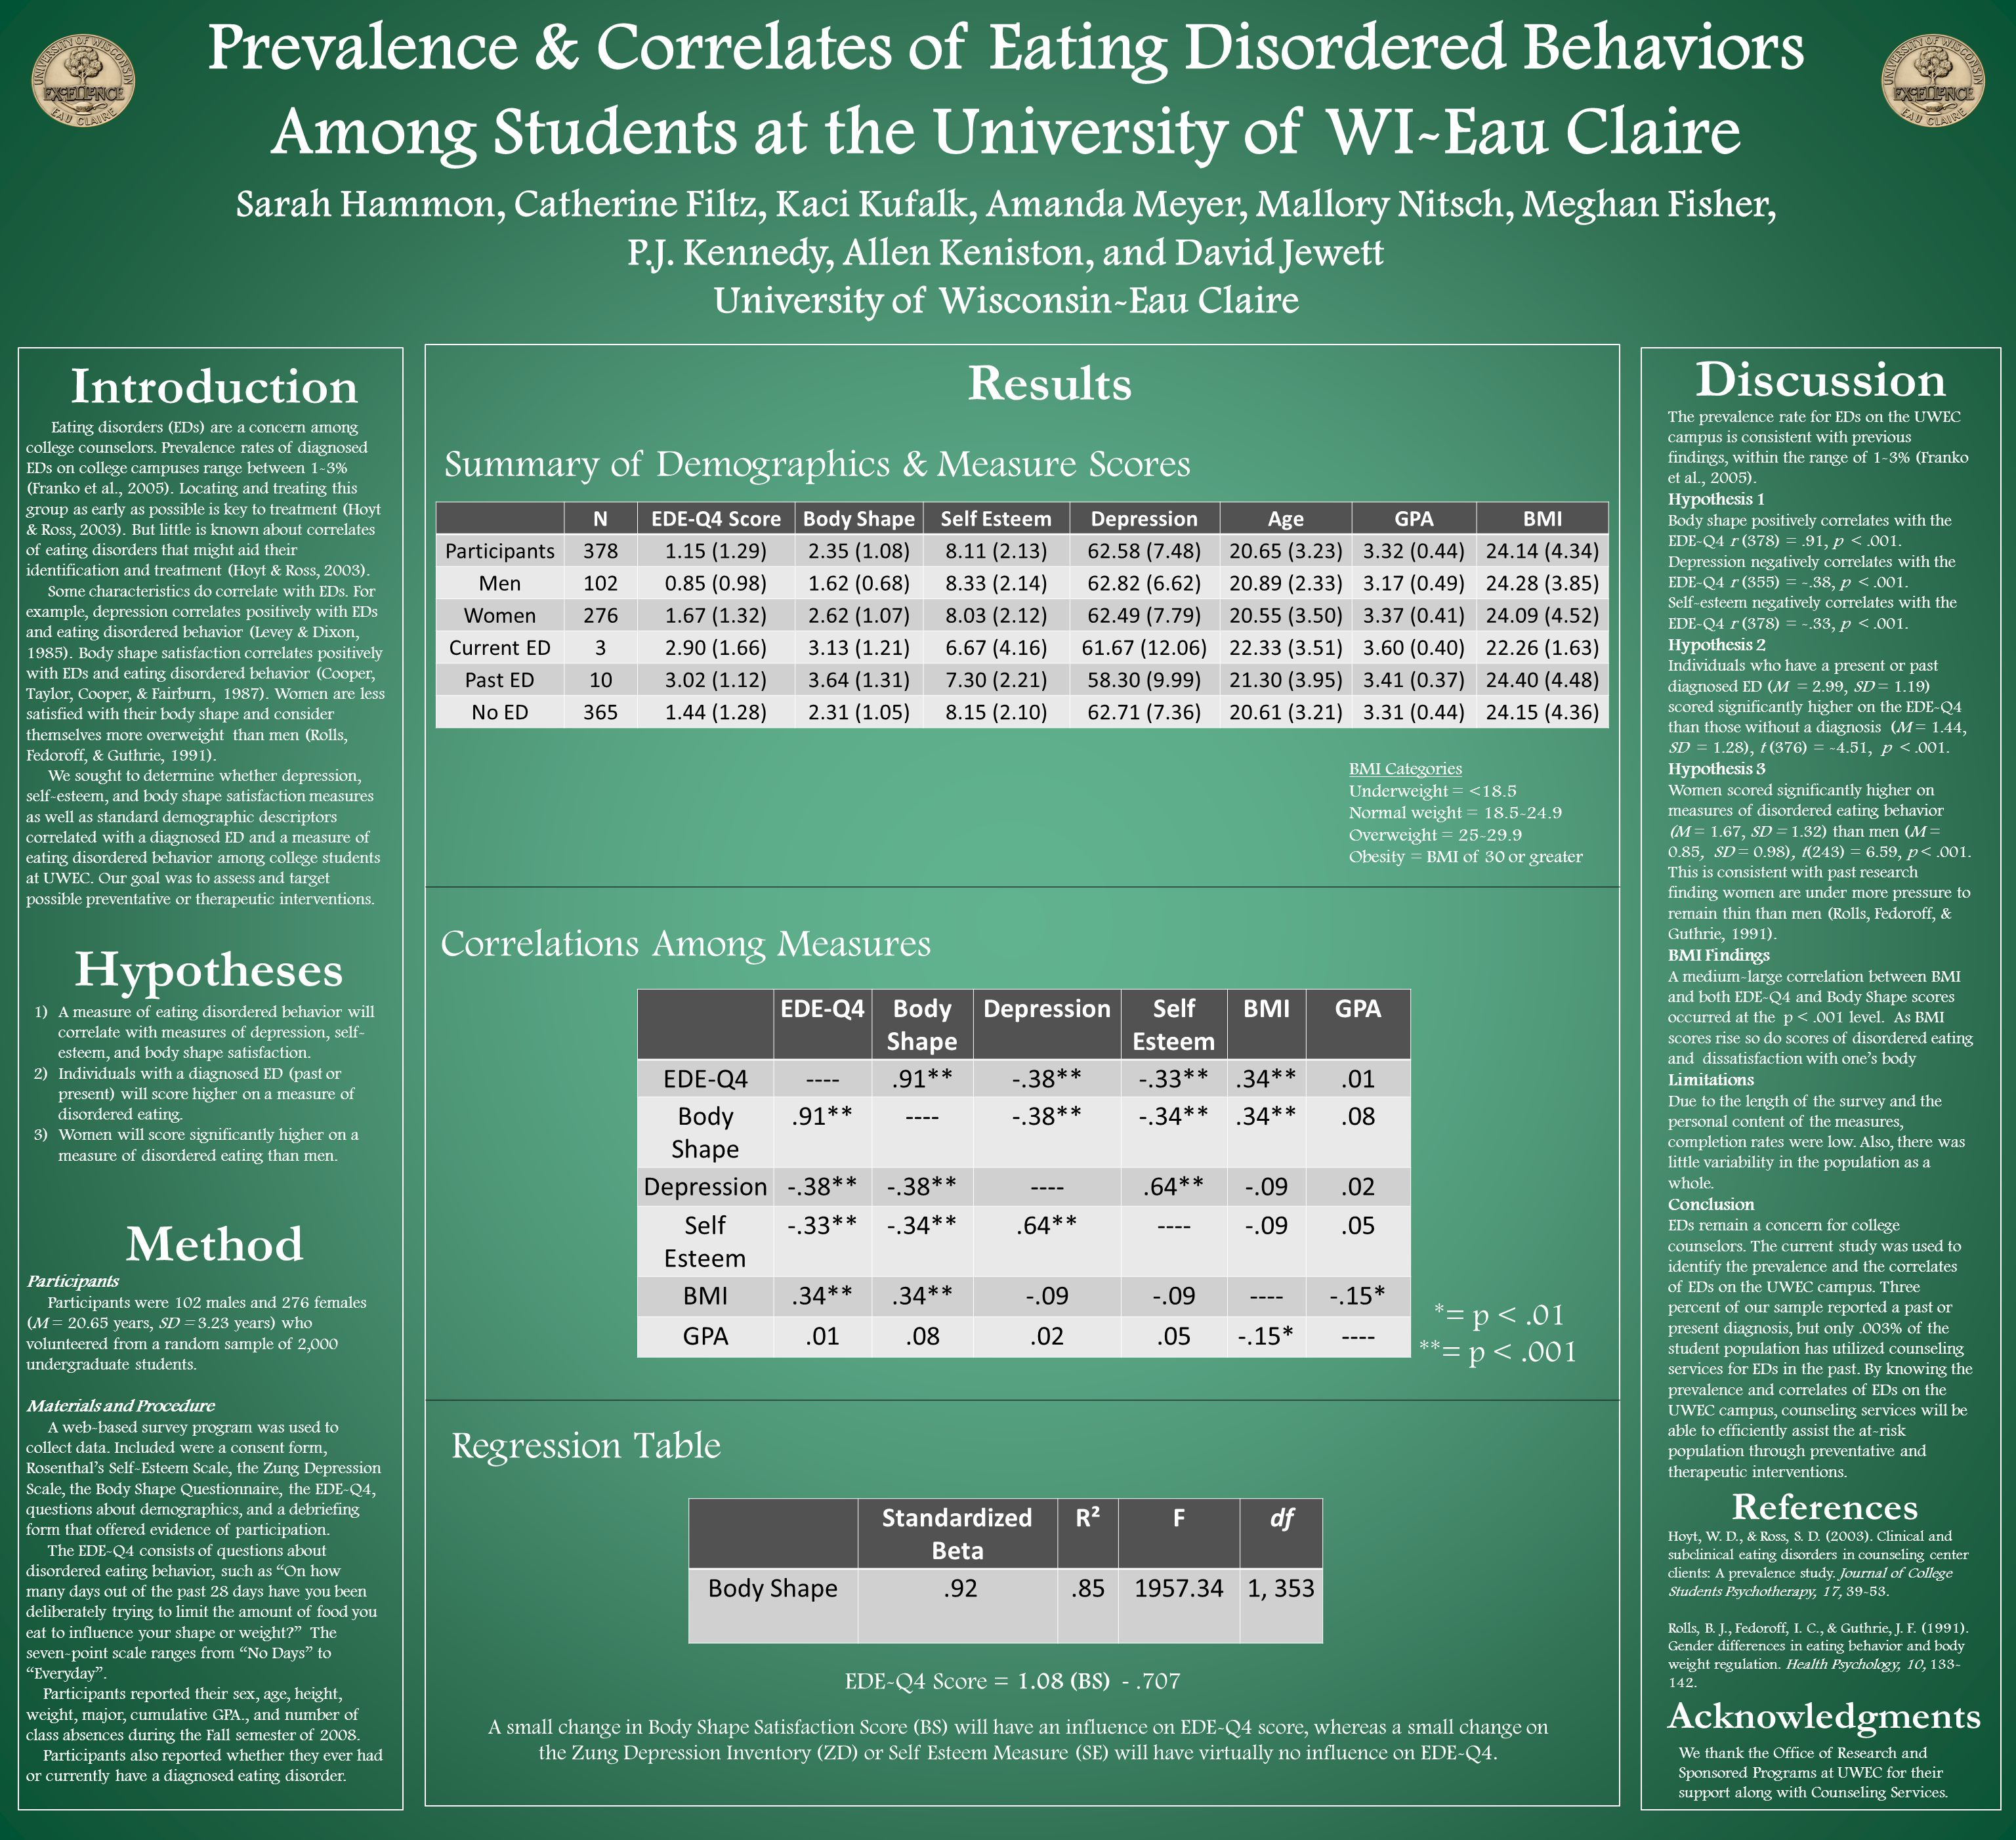 Prevalence & Correlates of Eating Disordered Behaviors Among Students at the University of WI-Eau Claire Sarah Hammon, Catherine Filtz, Kaci Kufalk, Amanda Meyer, Mallory Nitsch, Meghan Fisher, P.J.